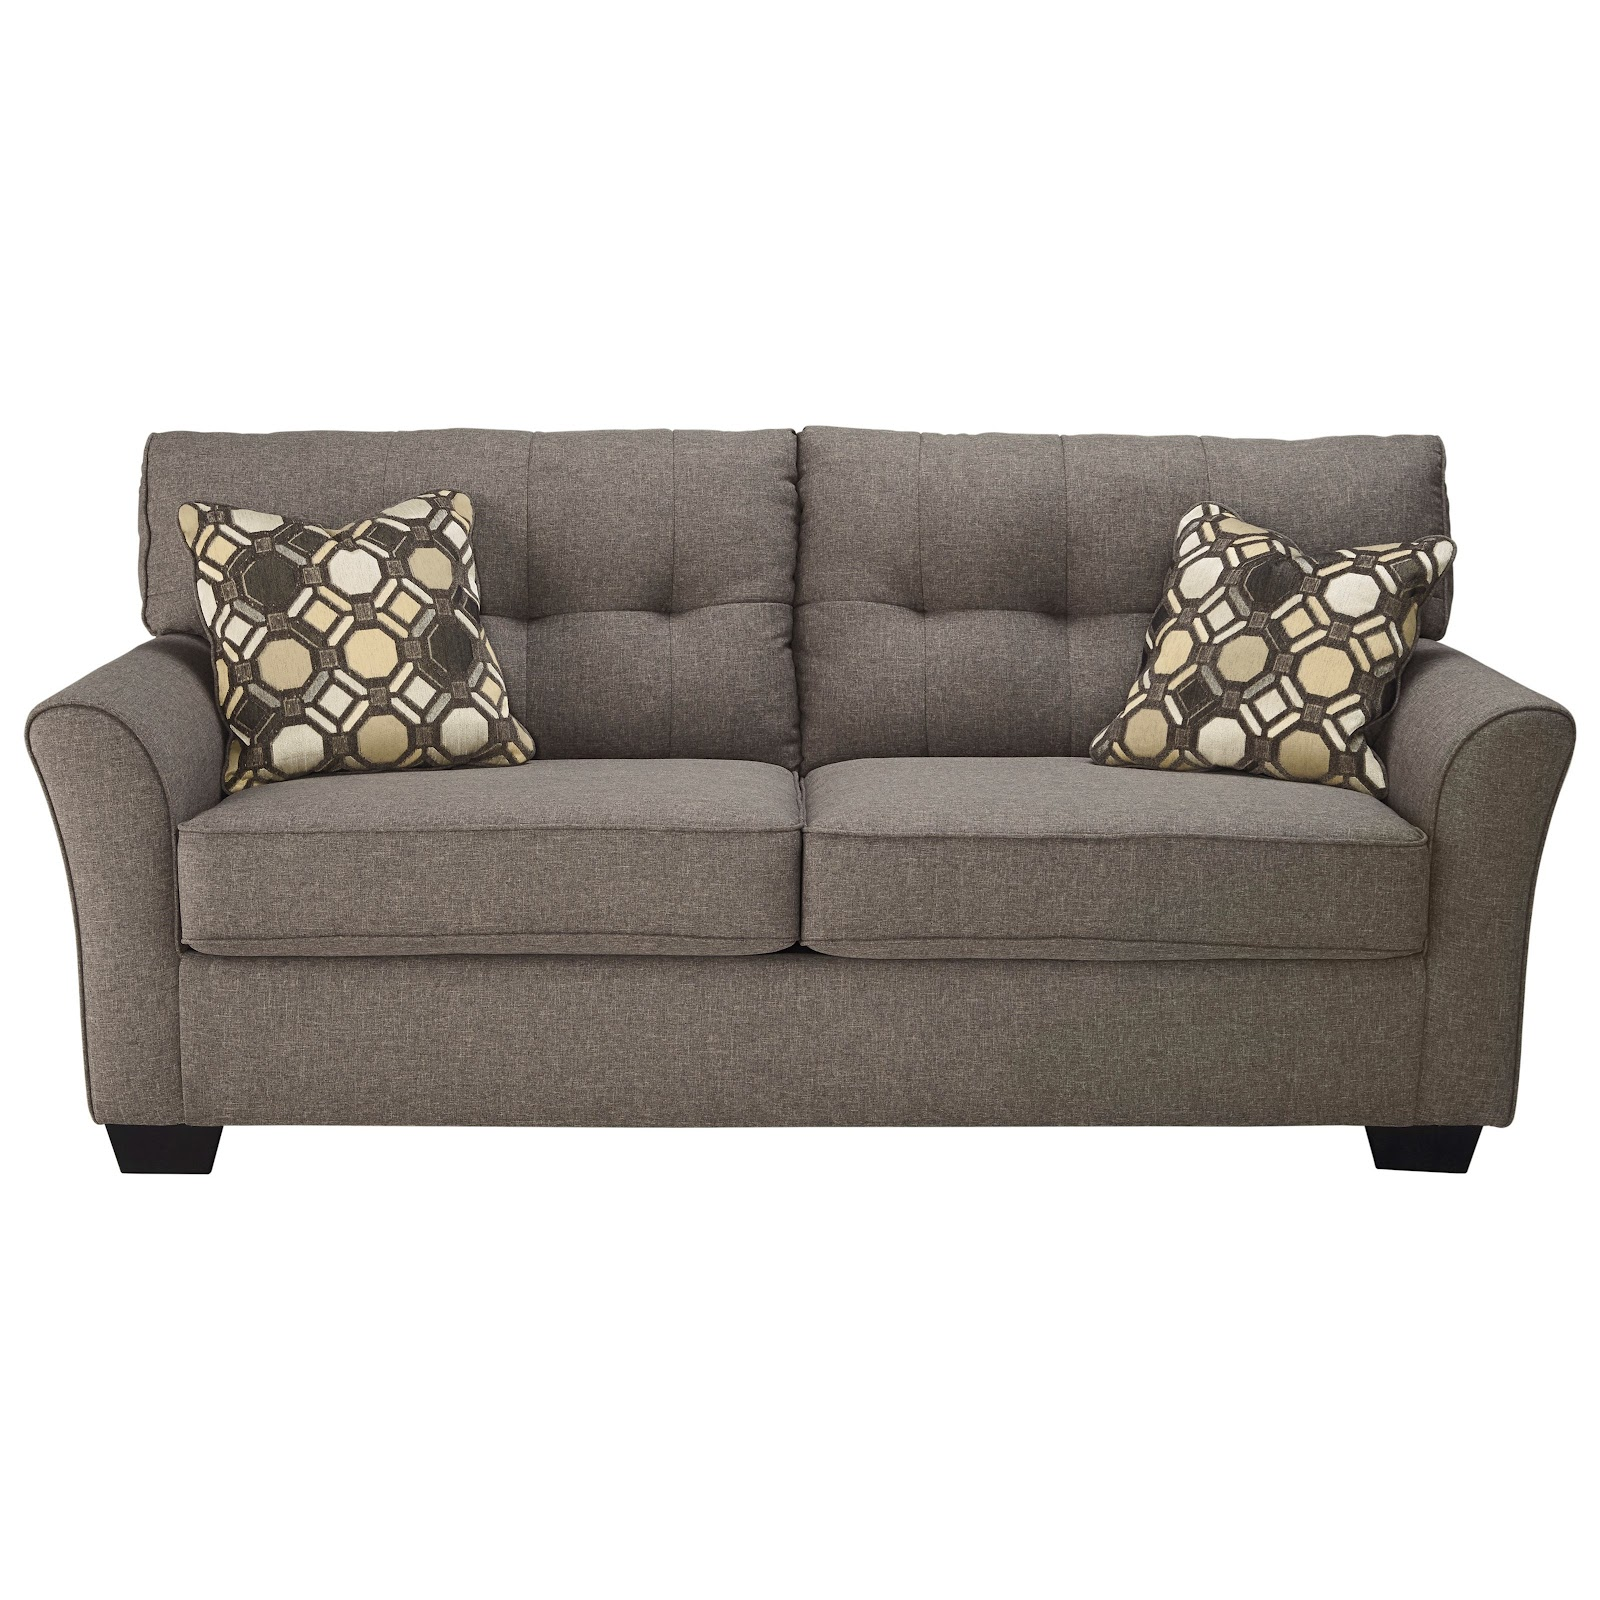 Sleeper sofas look just like normal sofas. Futons, on the other hand, tend to look like folded beds. Futons also tend to be easier to setup as beds compared to sleeper sofas. Image from dunkandbright.com.